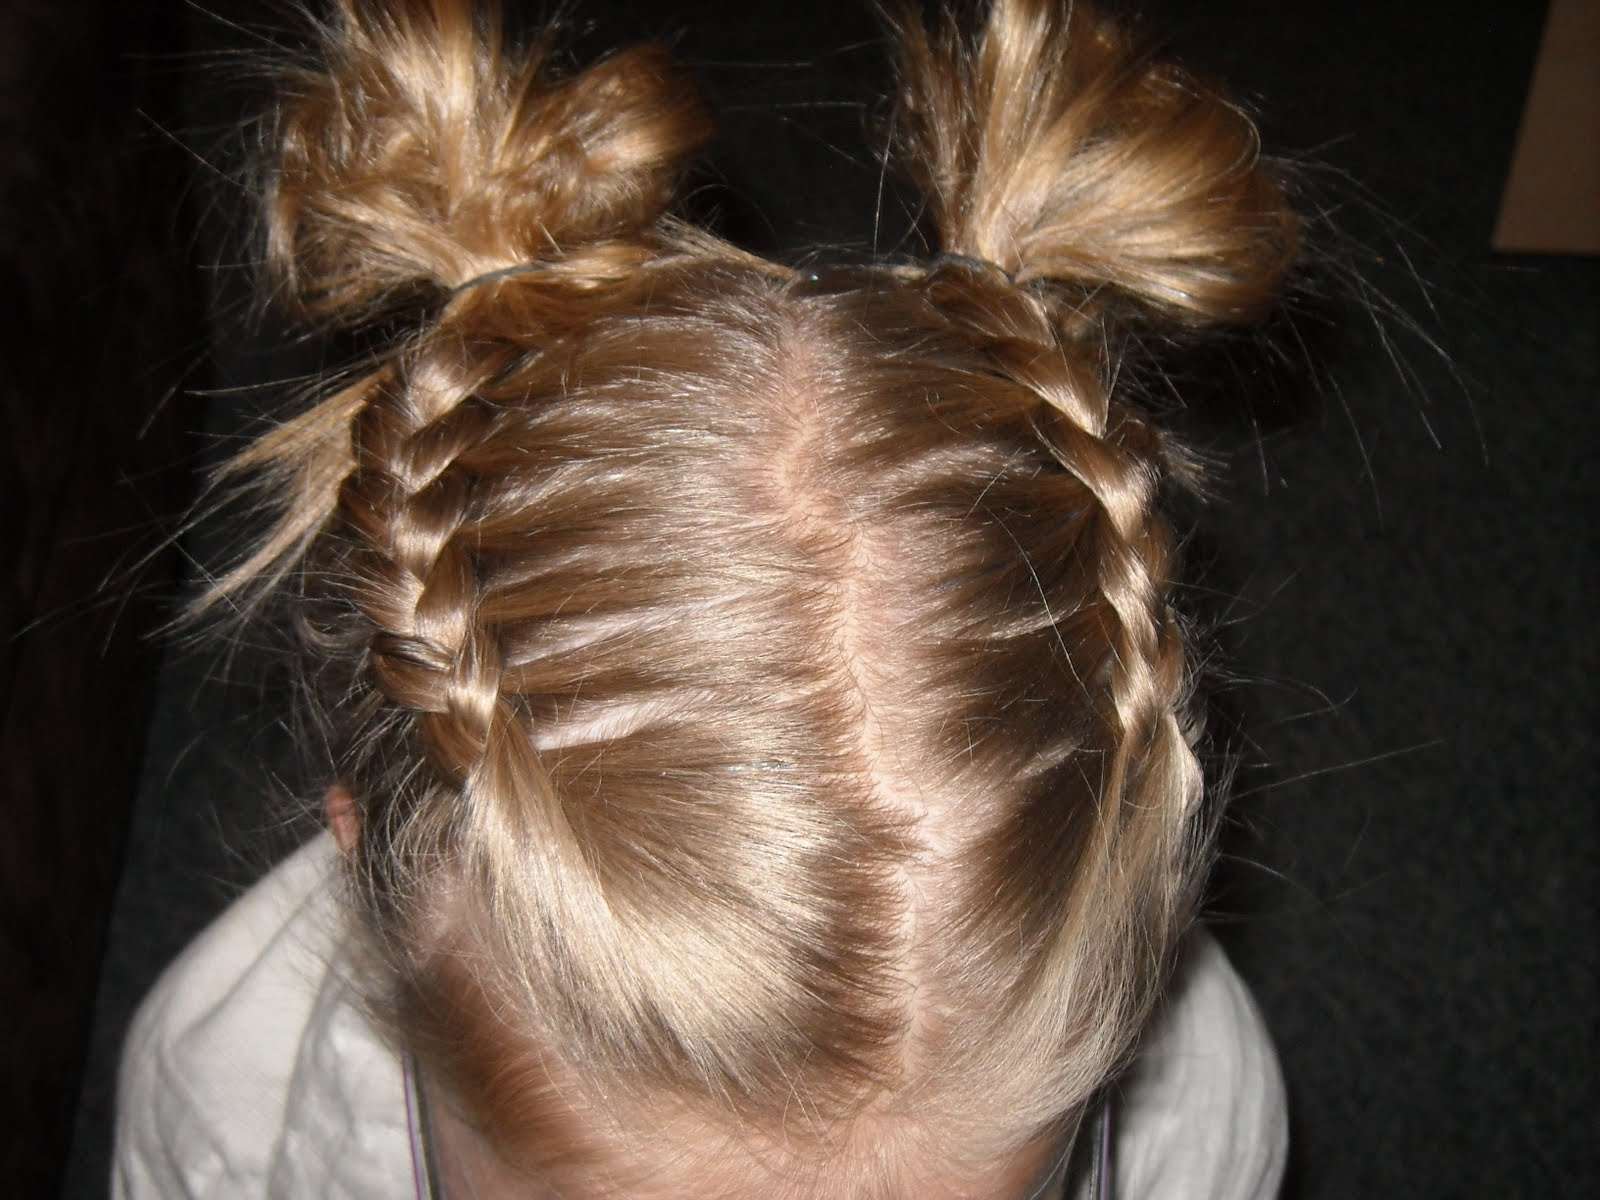 Chic Clips Hair: Swim Hair Part 20000894 Pertaining To Trendy French Braids Into Pigtails (View 5 of 15)